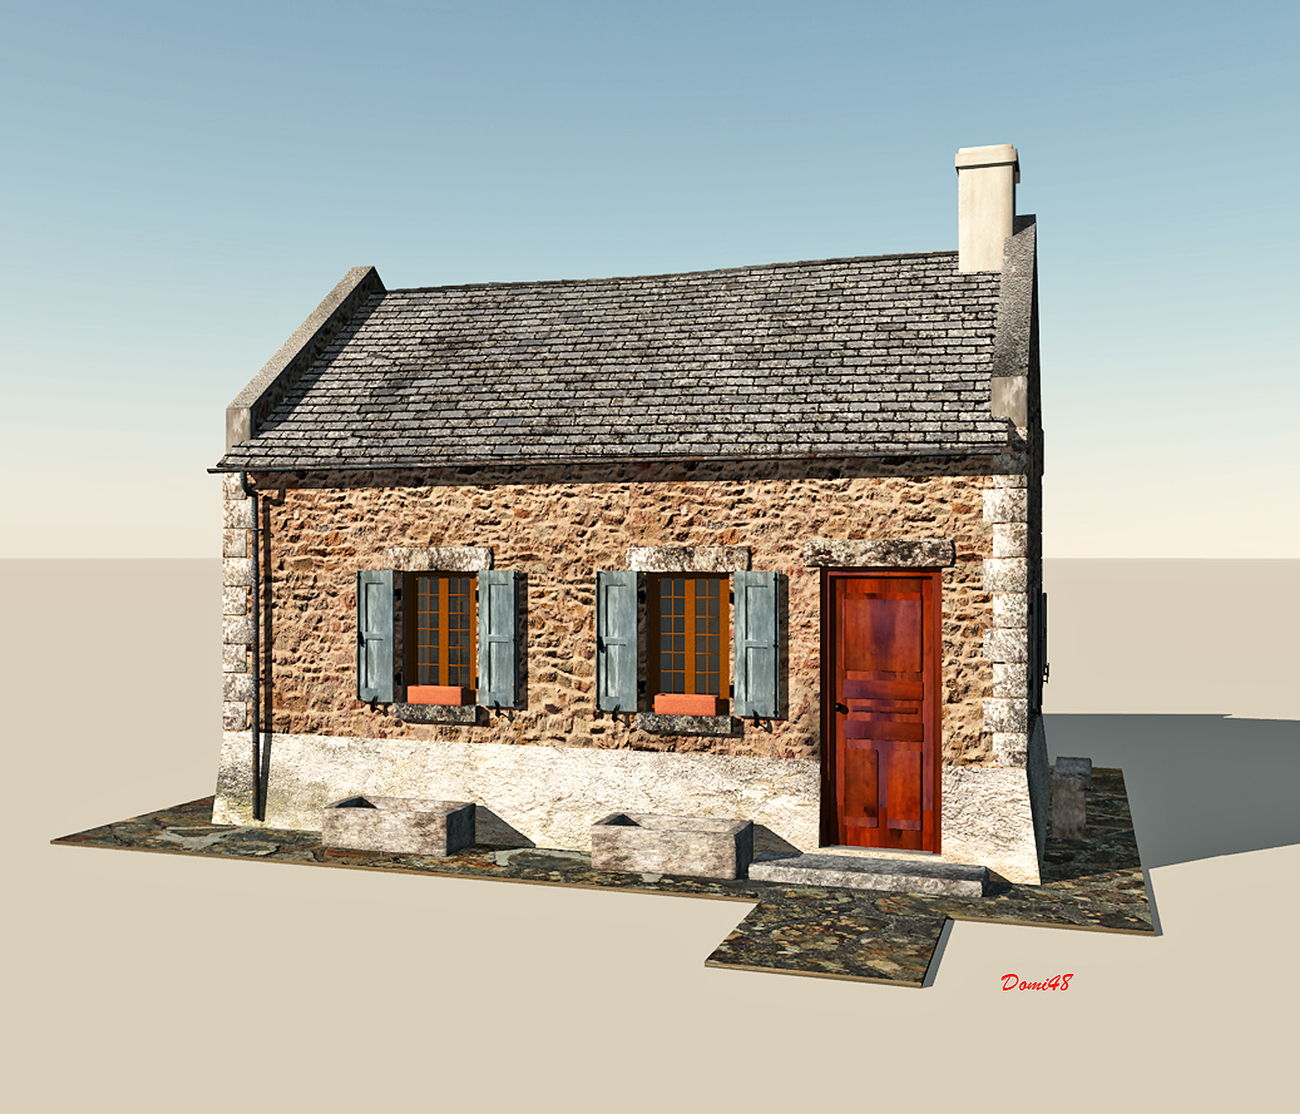 Easy house by Domi48